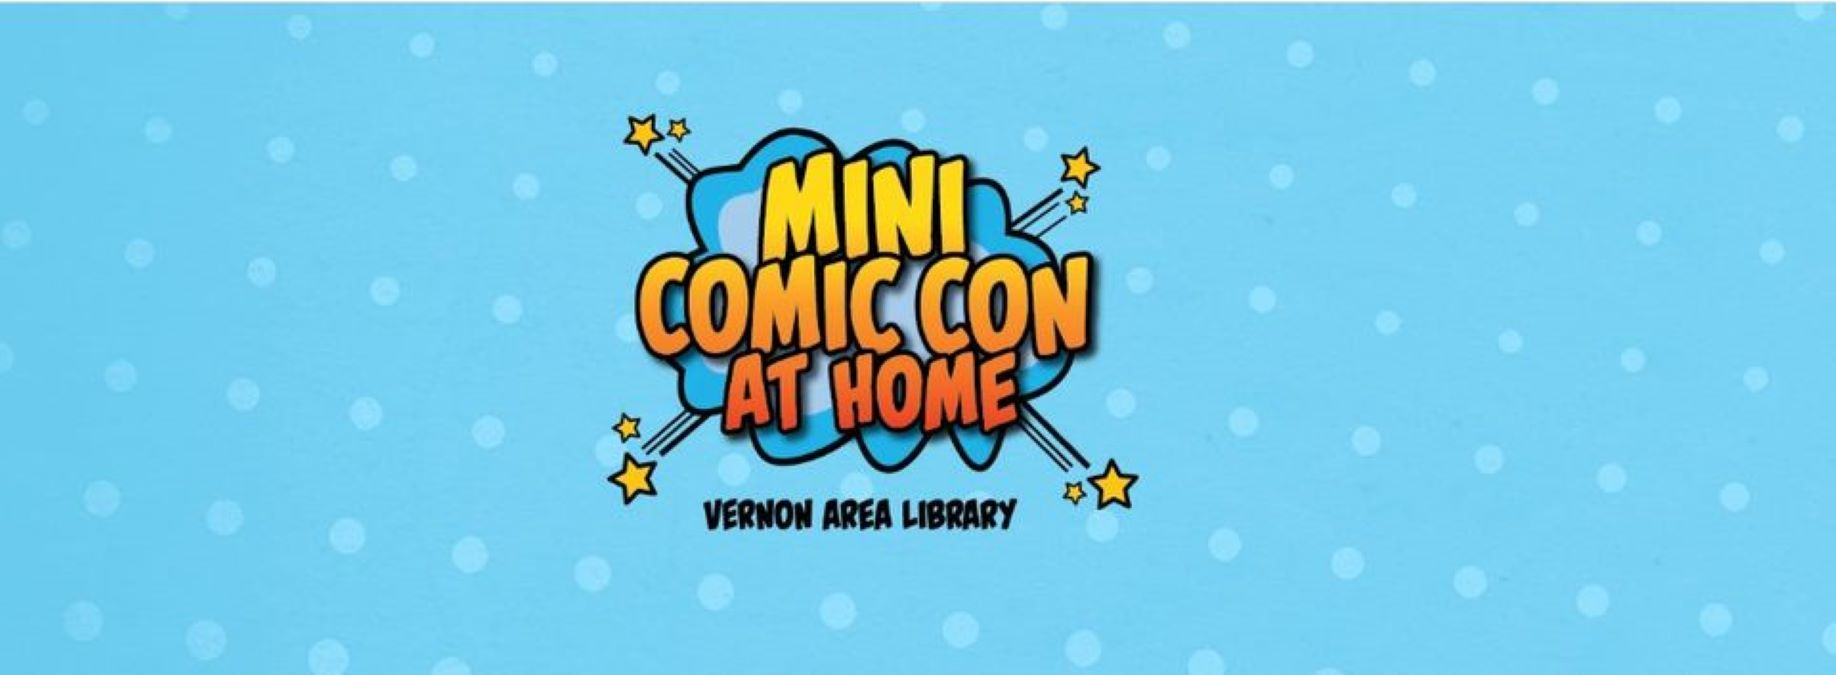 Annual Mini Comic Con At Home with the Vernon Area Public Library